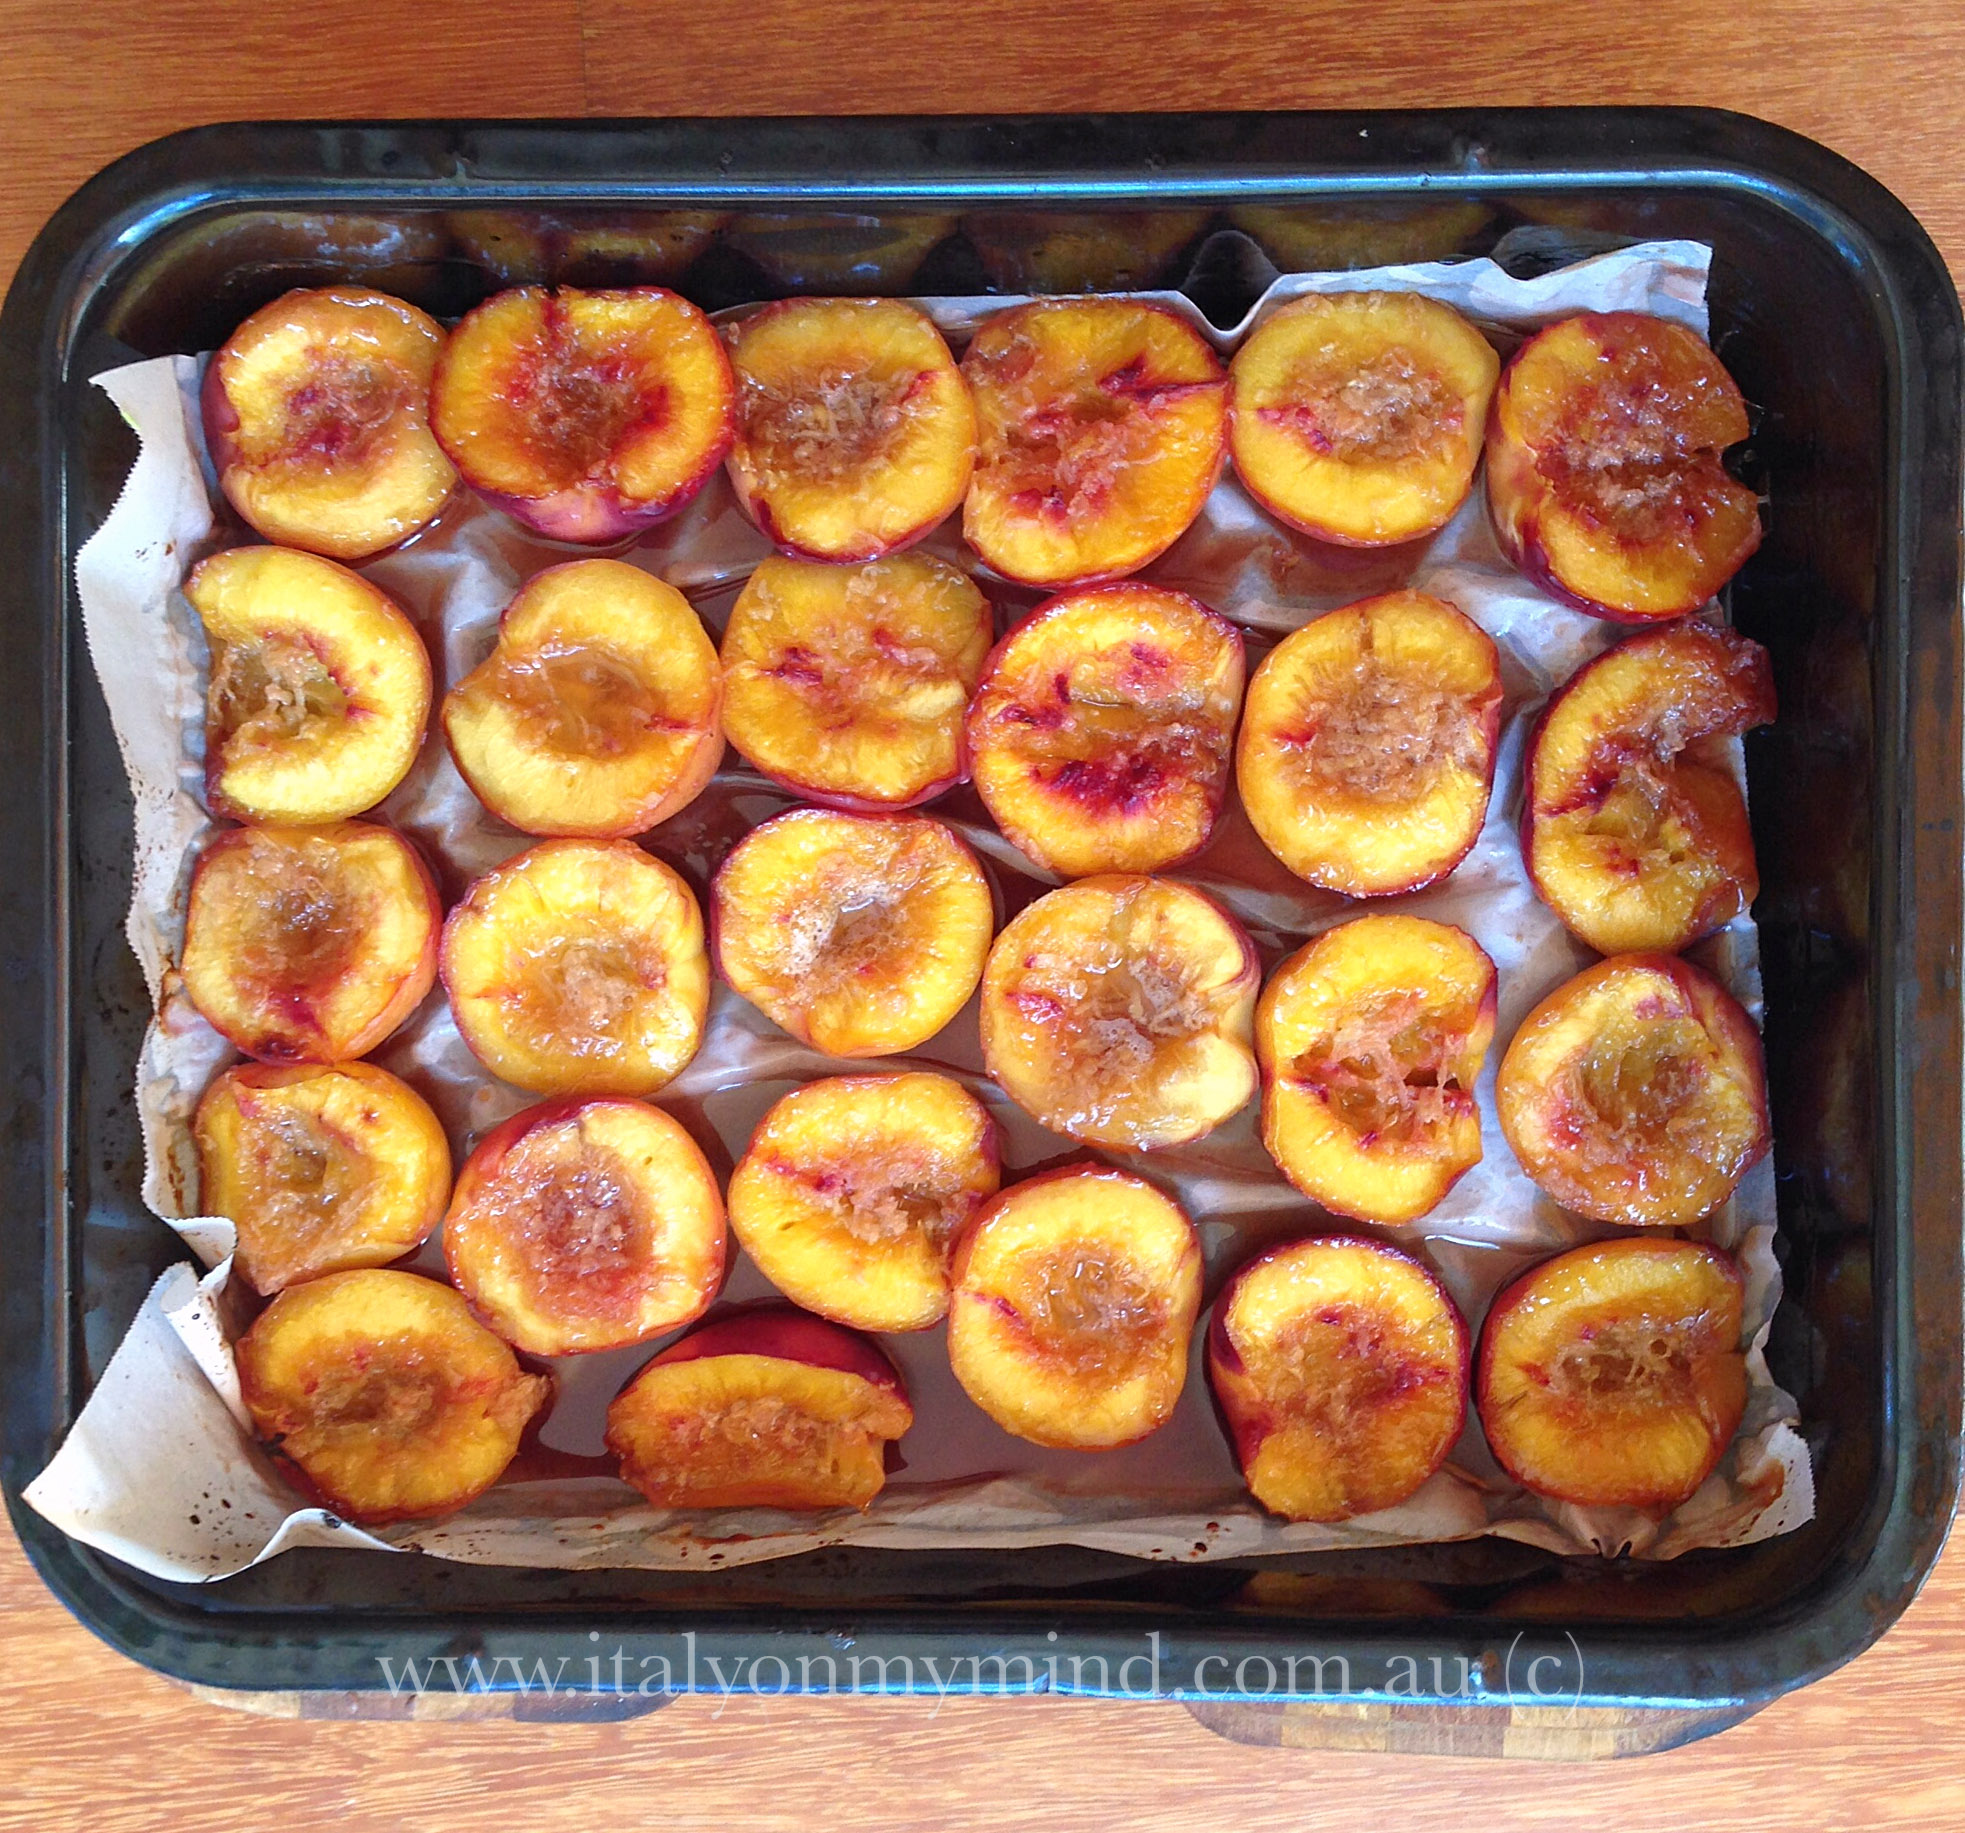 baked nectarines-italian food blog-italy on my mind